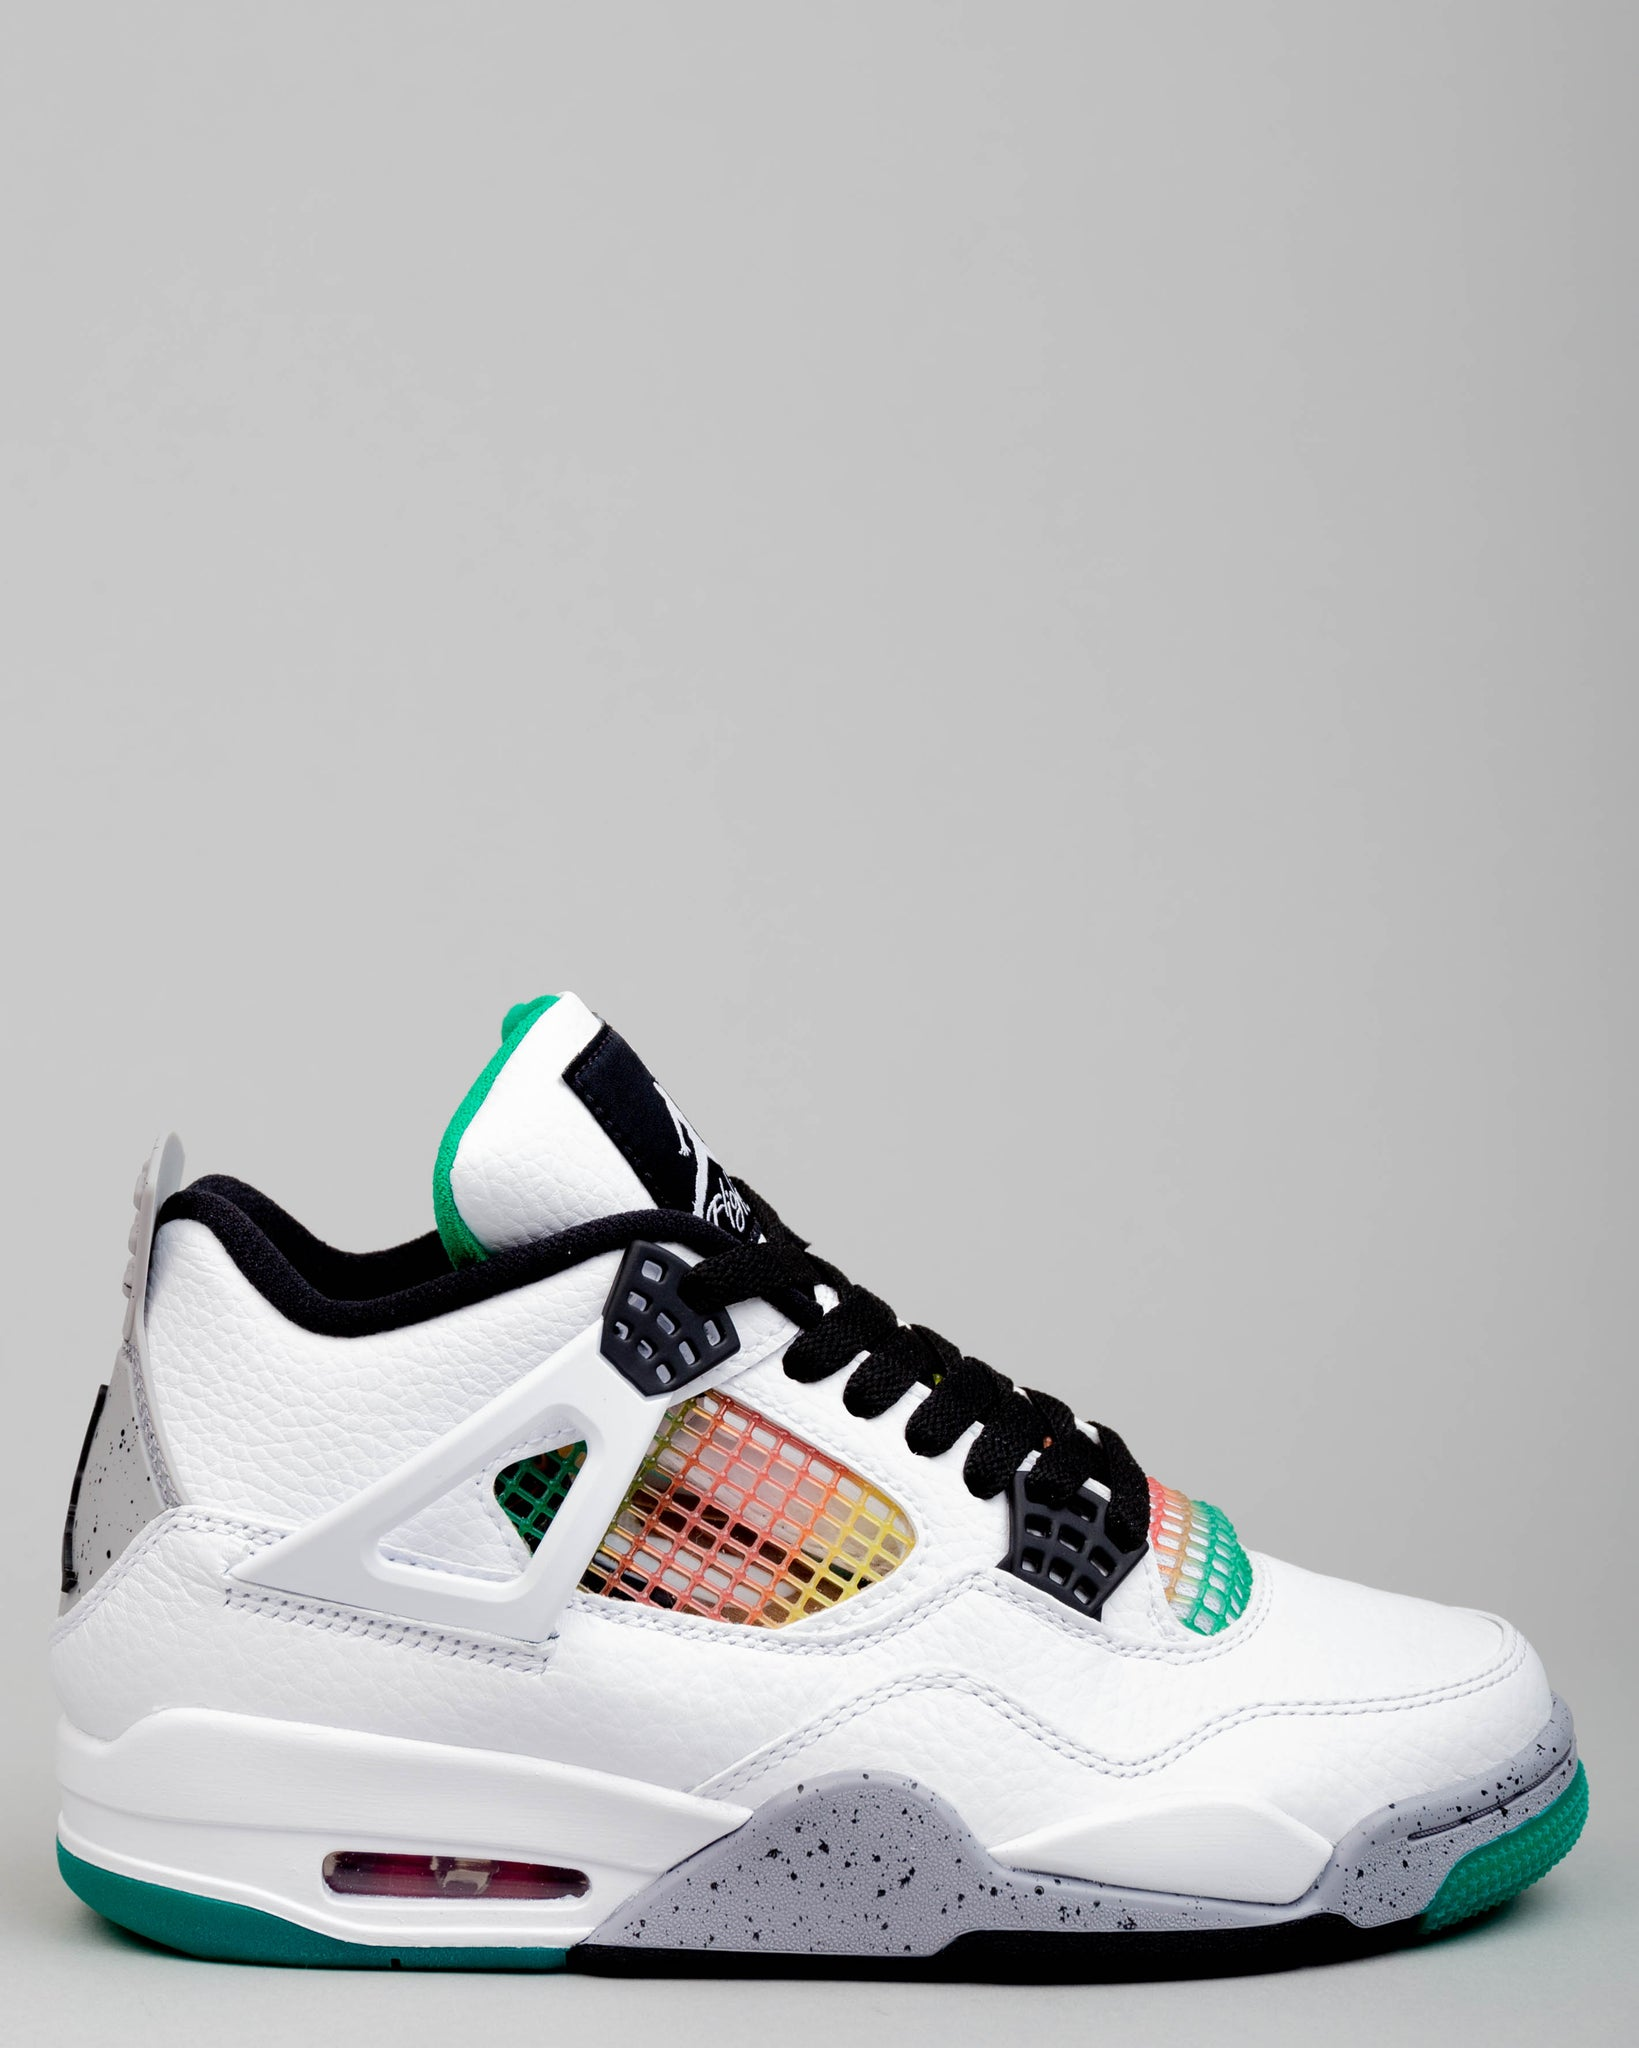 W Air Jordan 4 Retro White/Black/University Red/Lucid Green